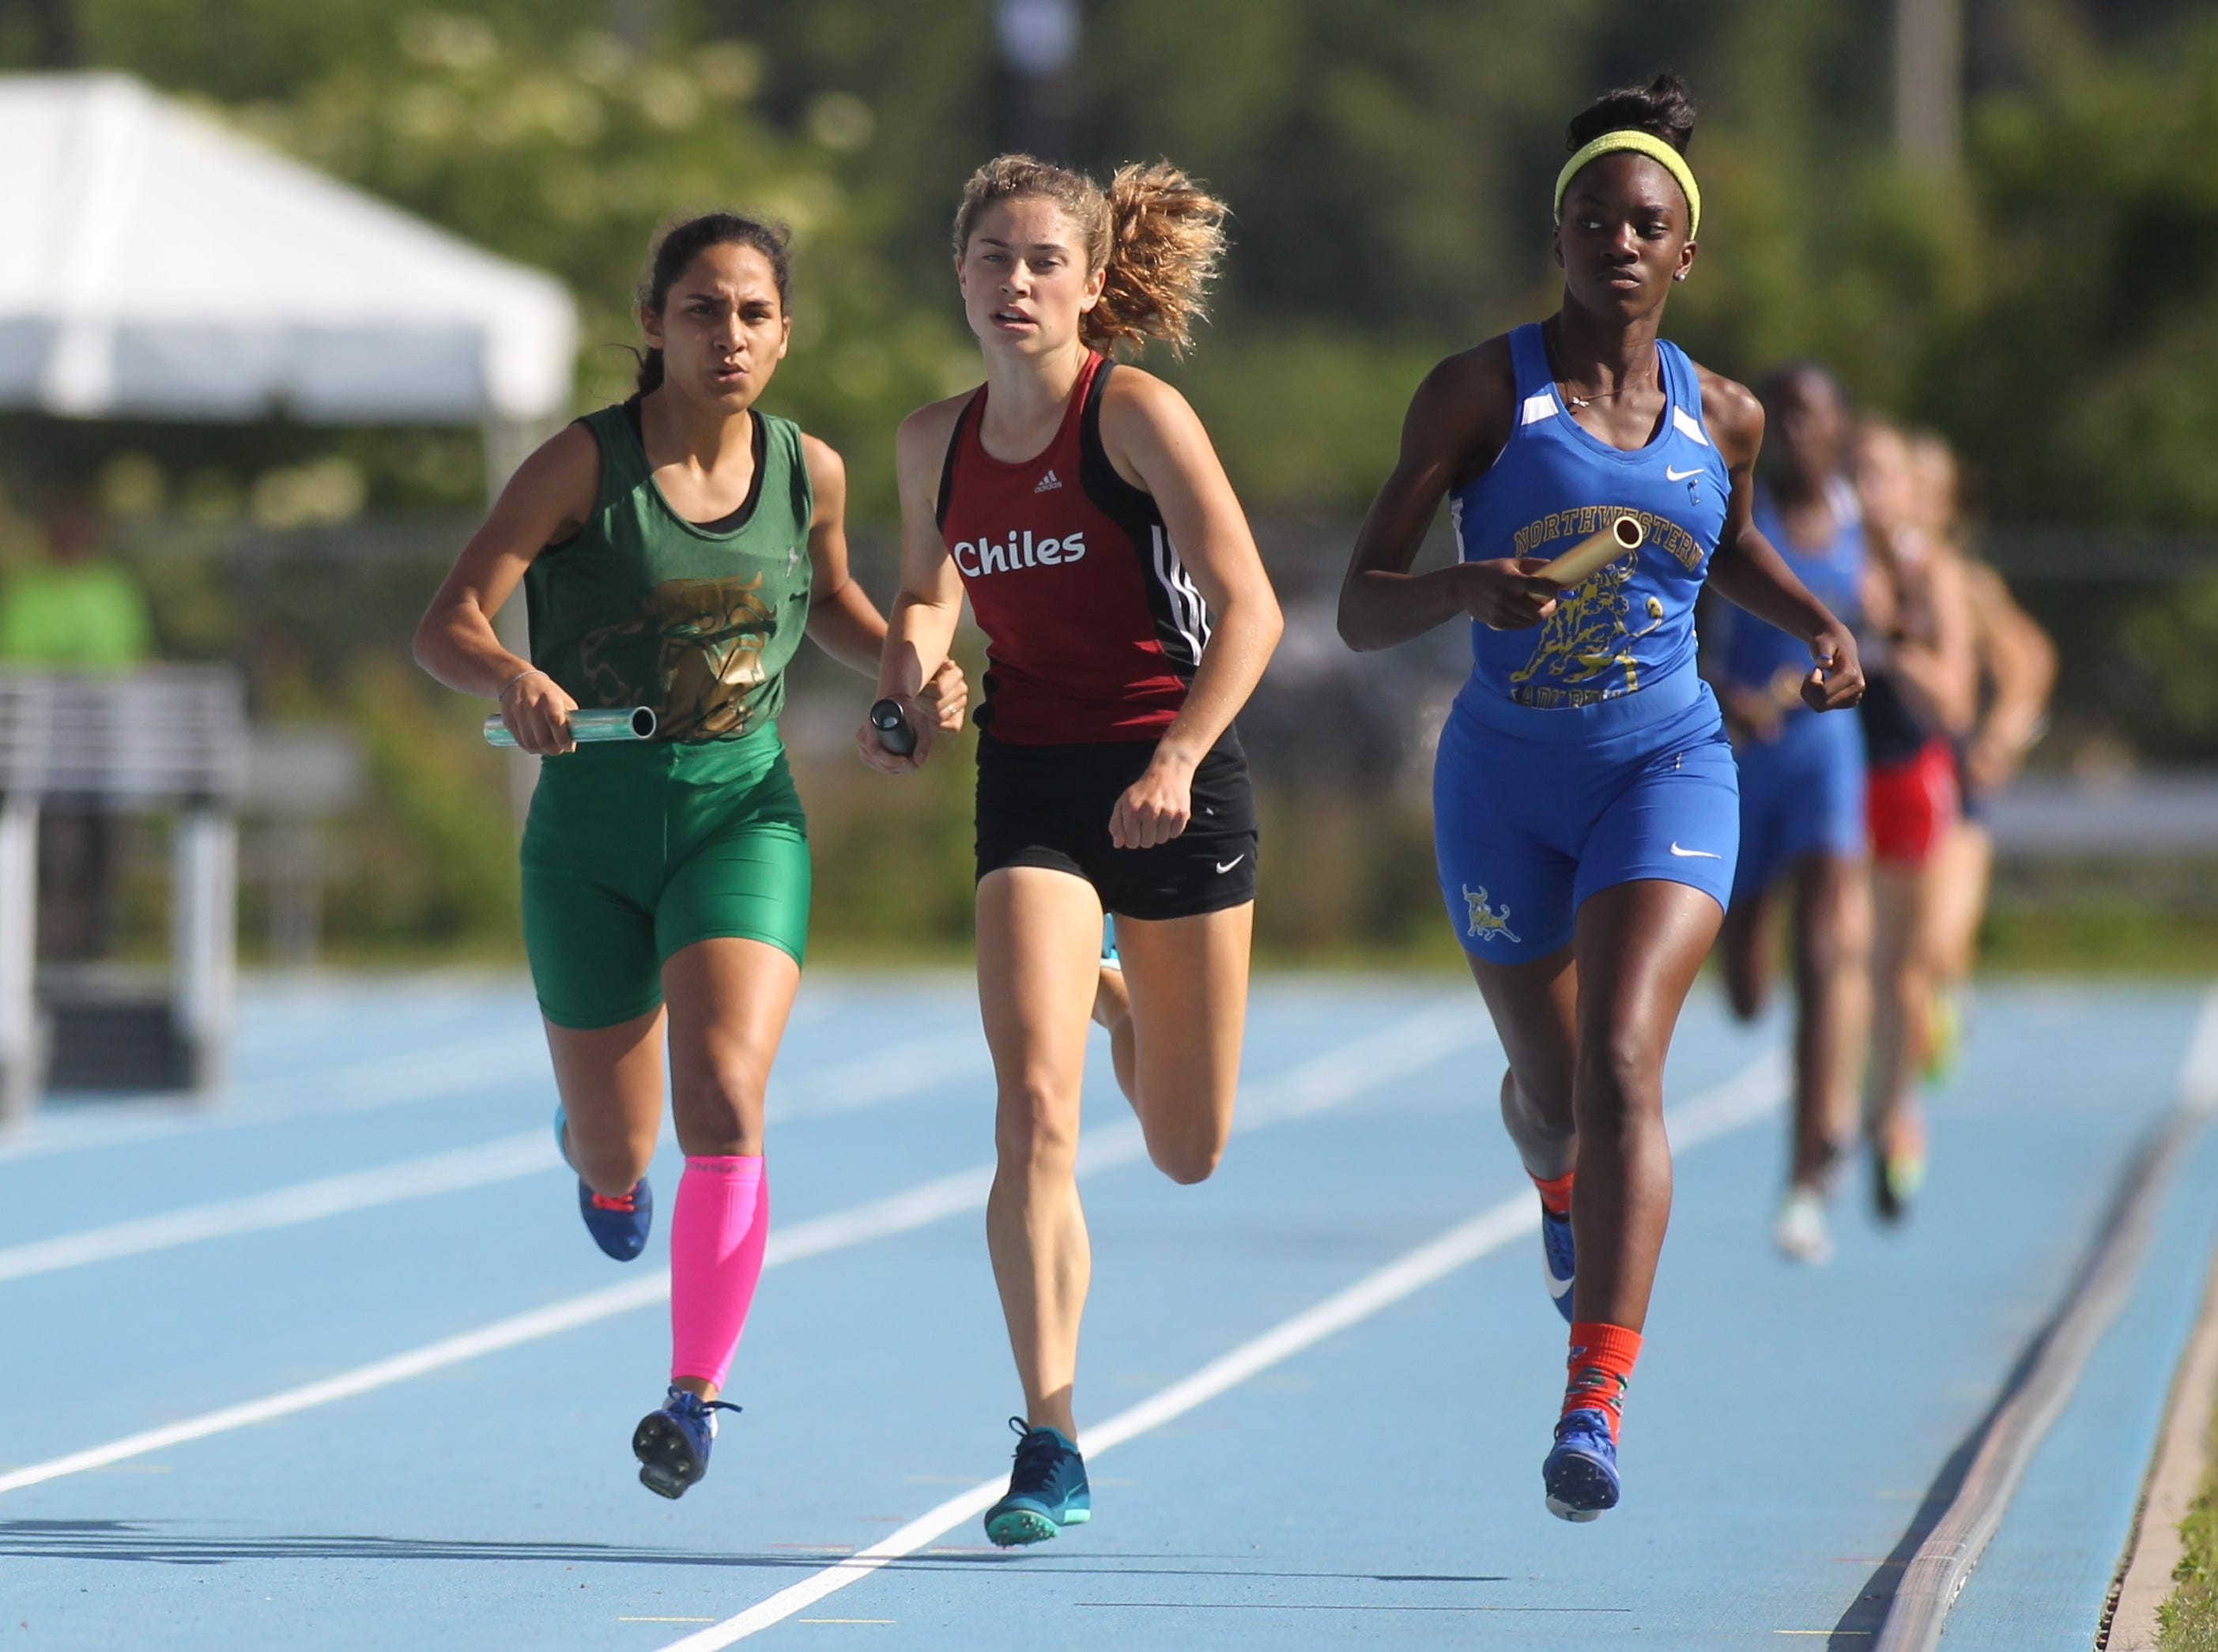 Chiles junior Alyson Churchill runs the second leg as Chiles' girls 4x800 relay captured gold in Florida's fourth-best time ever during the FHSAA Track & Field State Championships at UNF's Hodges Stadium in Jacksonville on May 4, 2019.